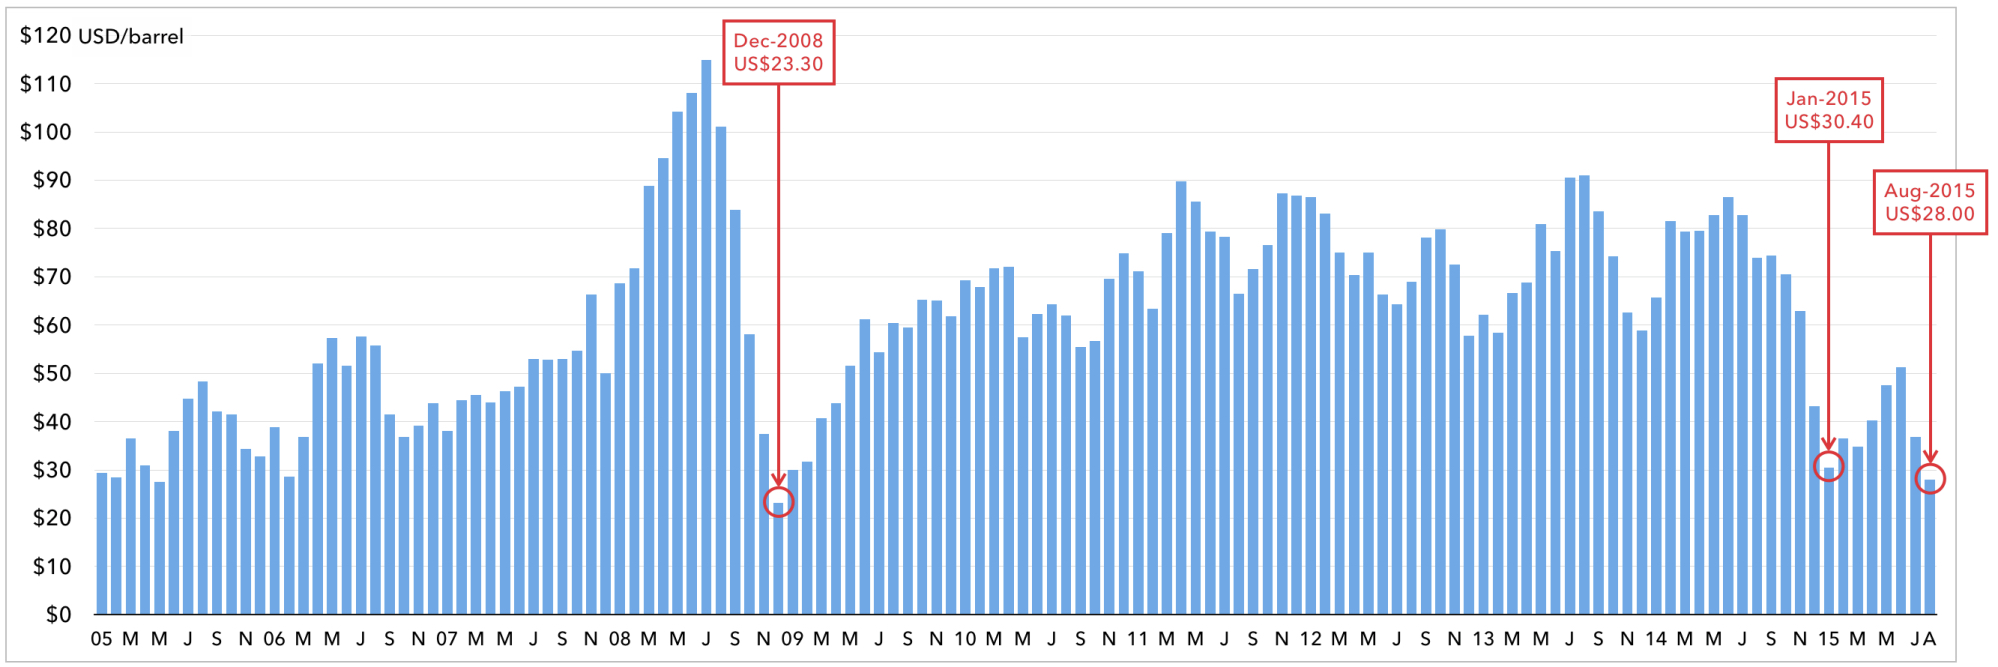 WESTERN CANADIAN SELECT MONTHLY AVERAGE PRICE (2005 TO PRESENT)   NOTE: AUGUST MONTHLY AVERAGE PRICE REFLECTS AVERAGE TO DATE